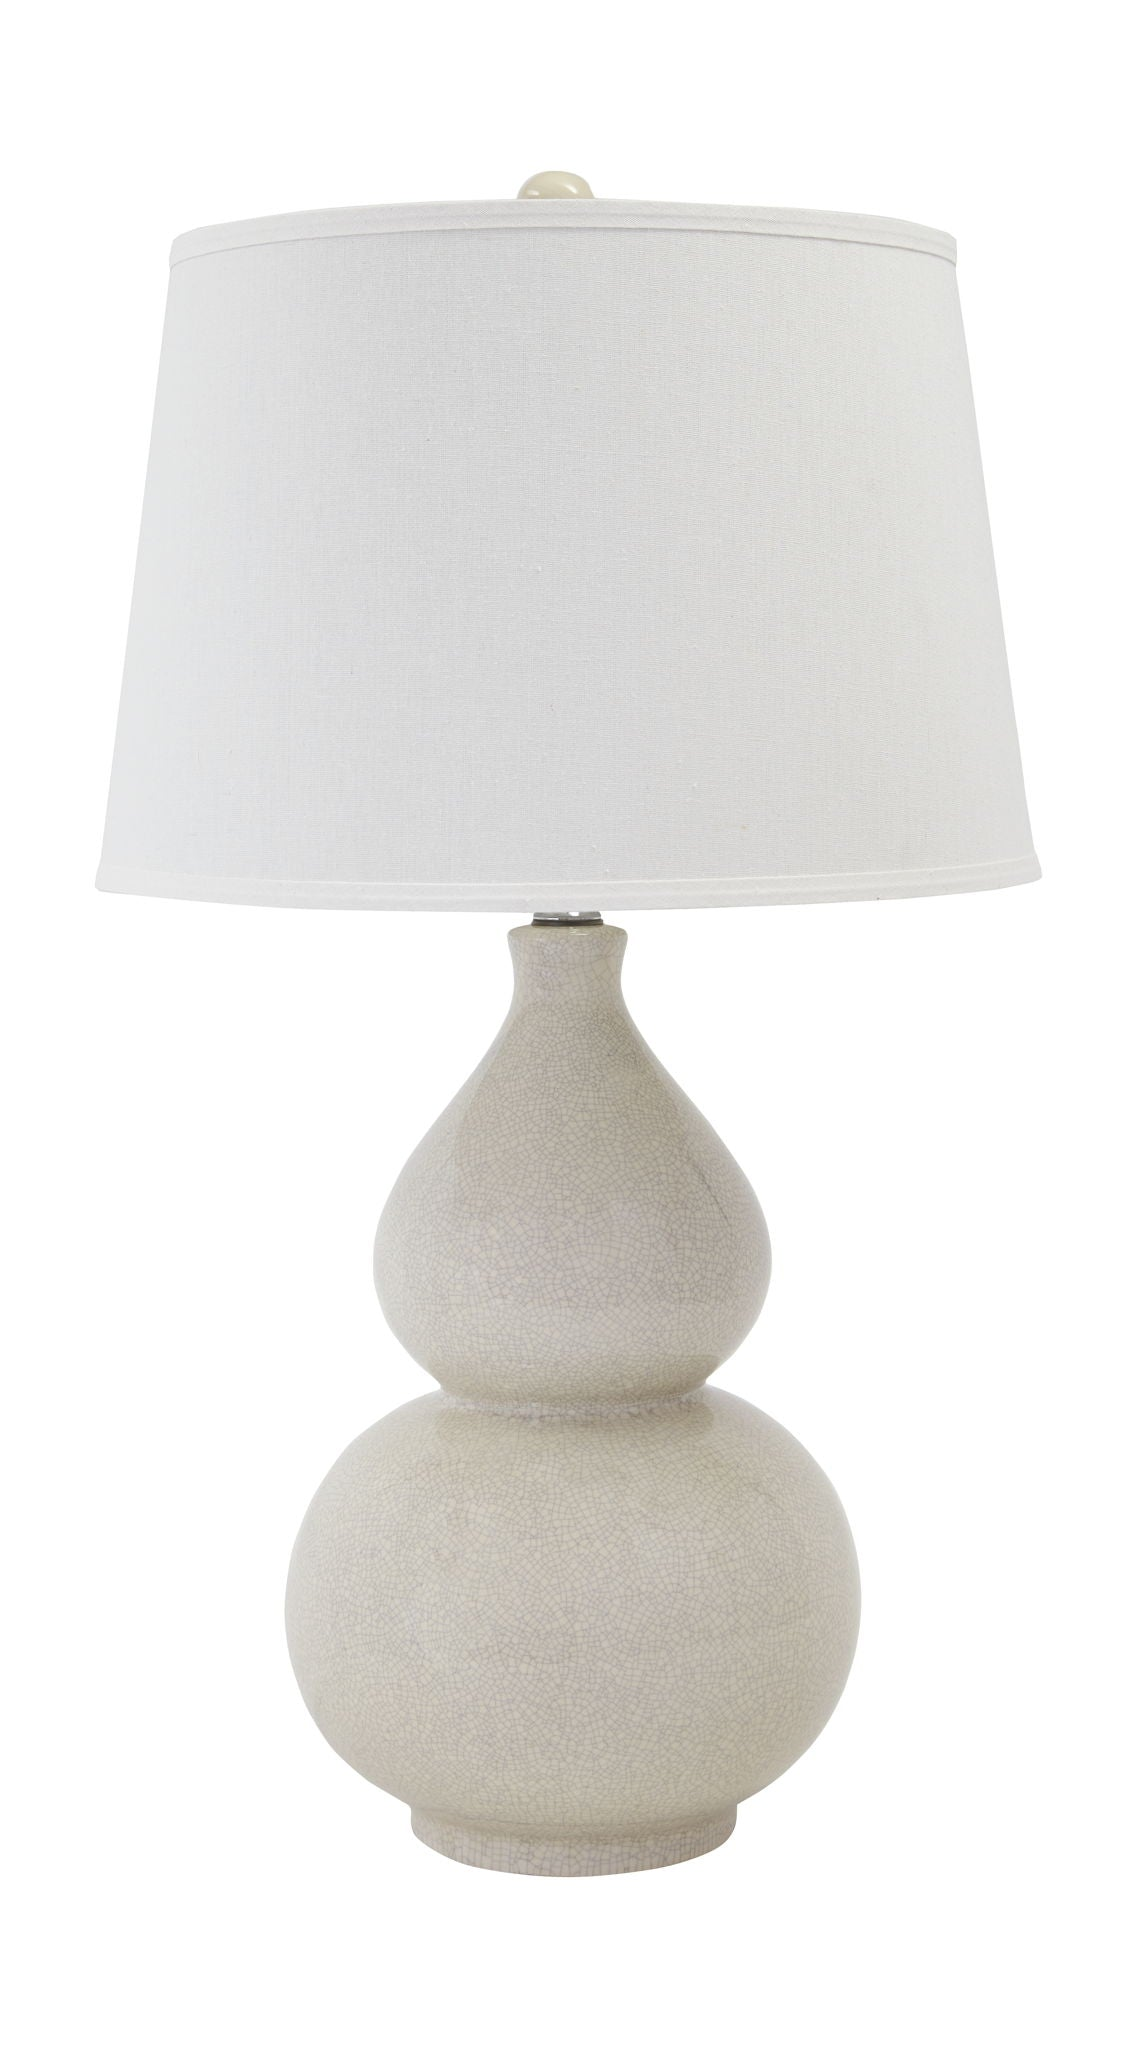 Saffi Table Lamp | Calgary's Furniture Store